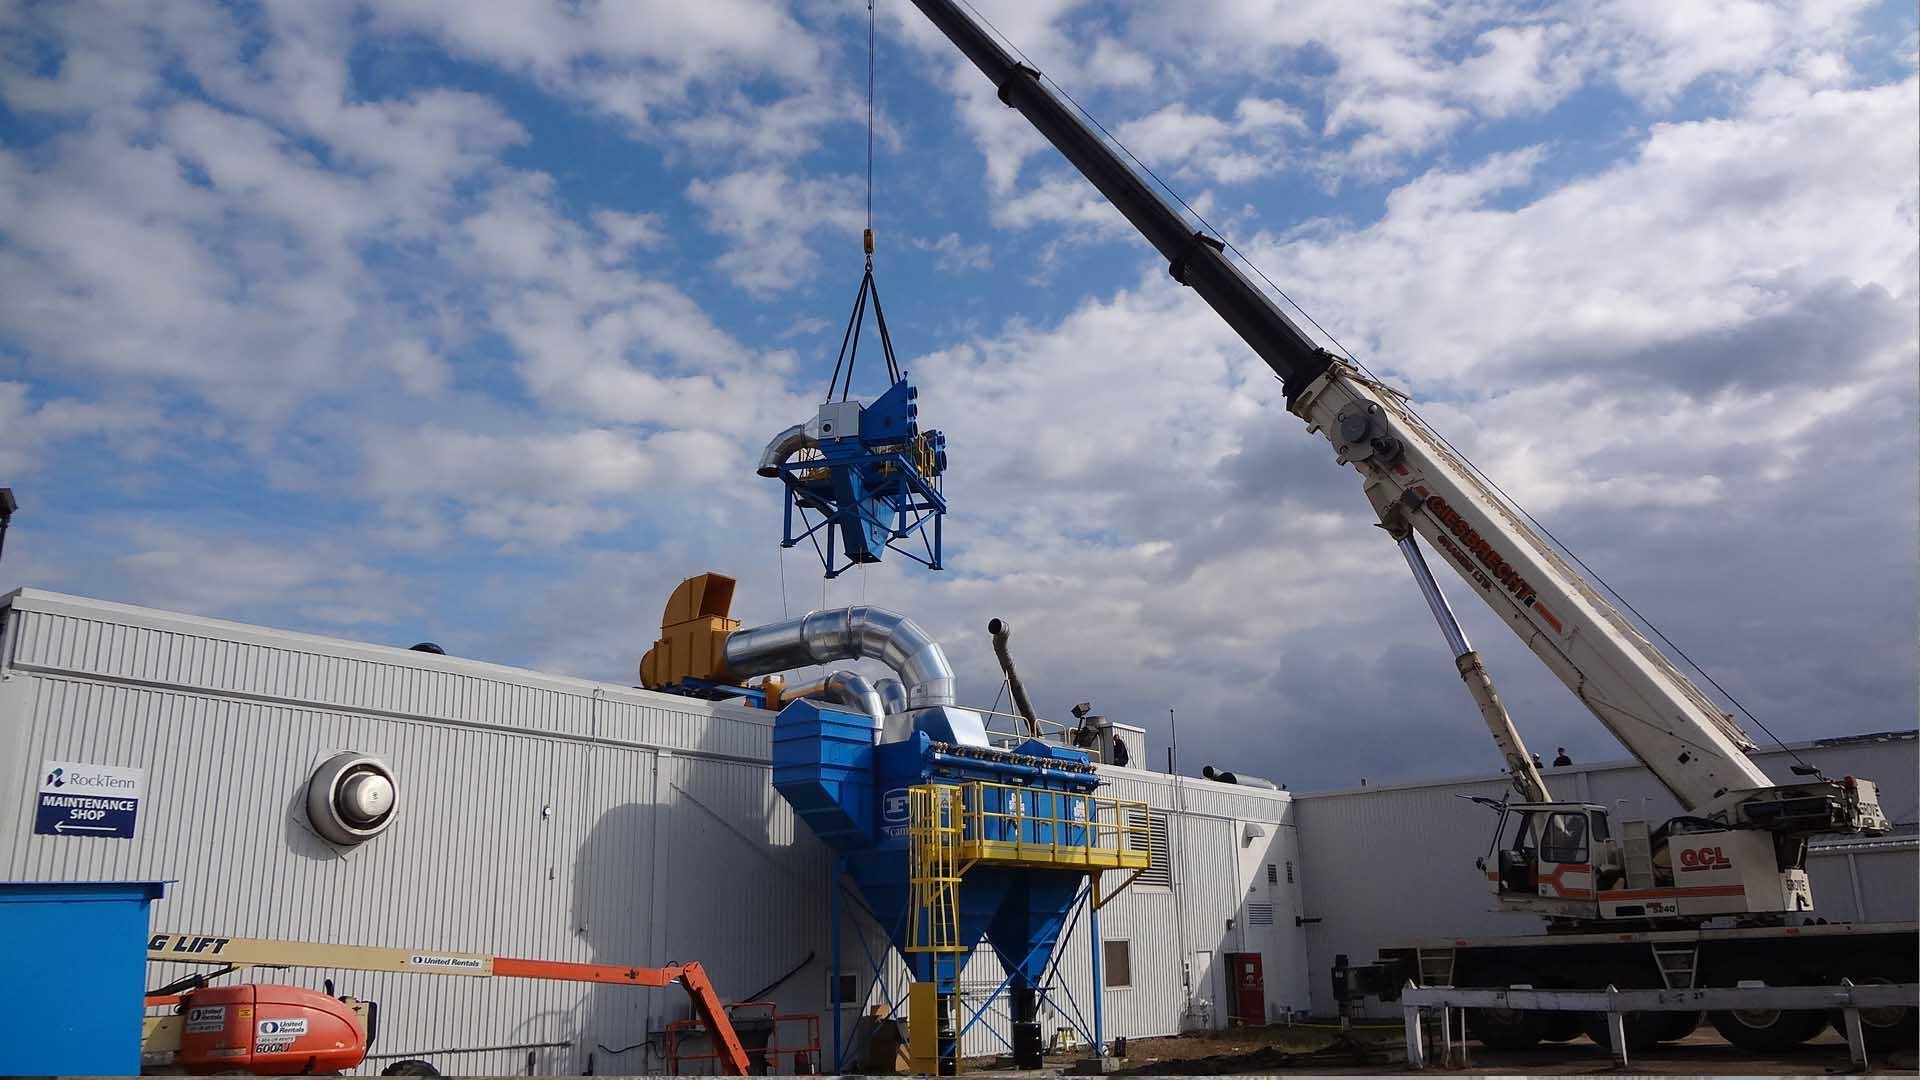 Kernic Systems, using a crane to install equipment